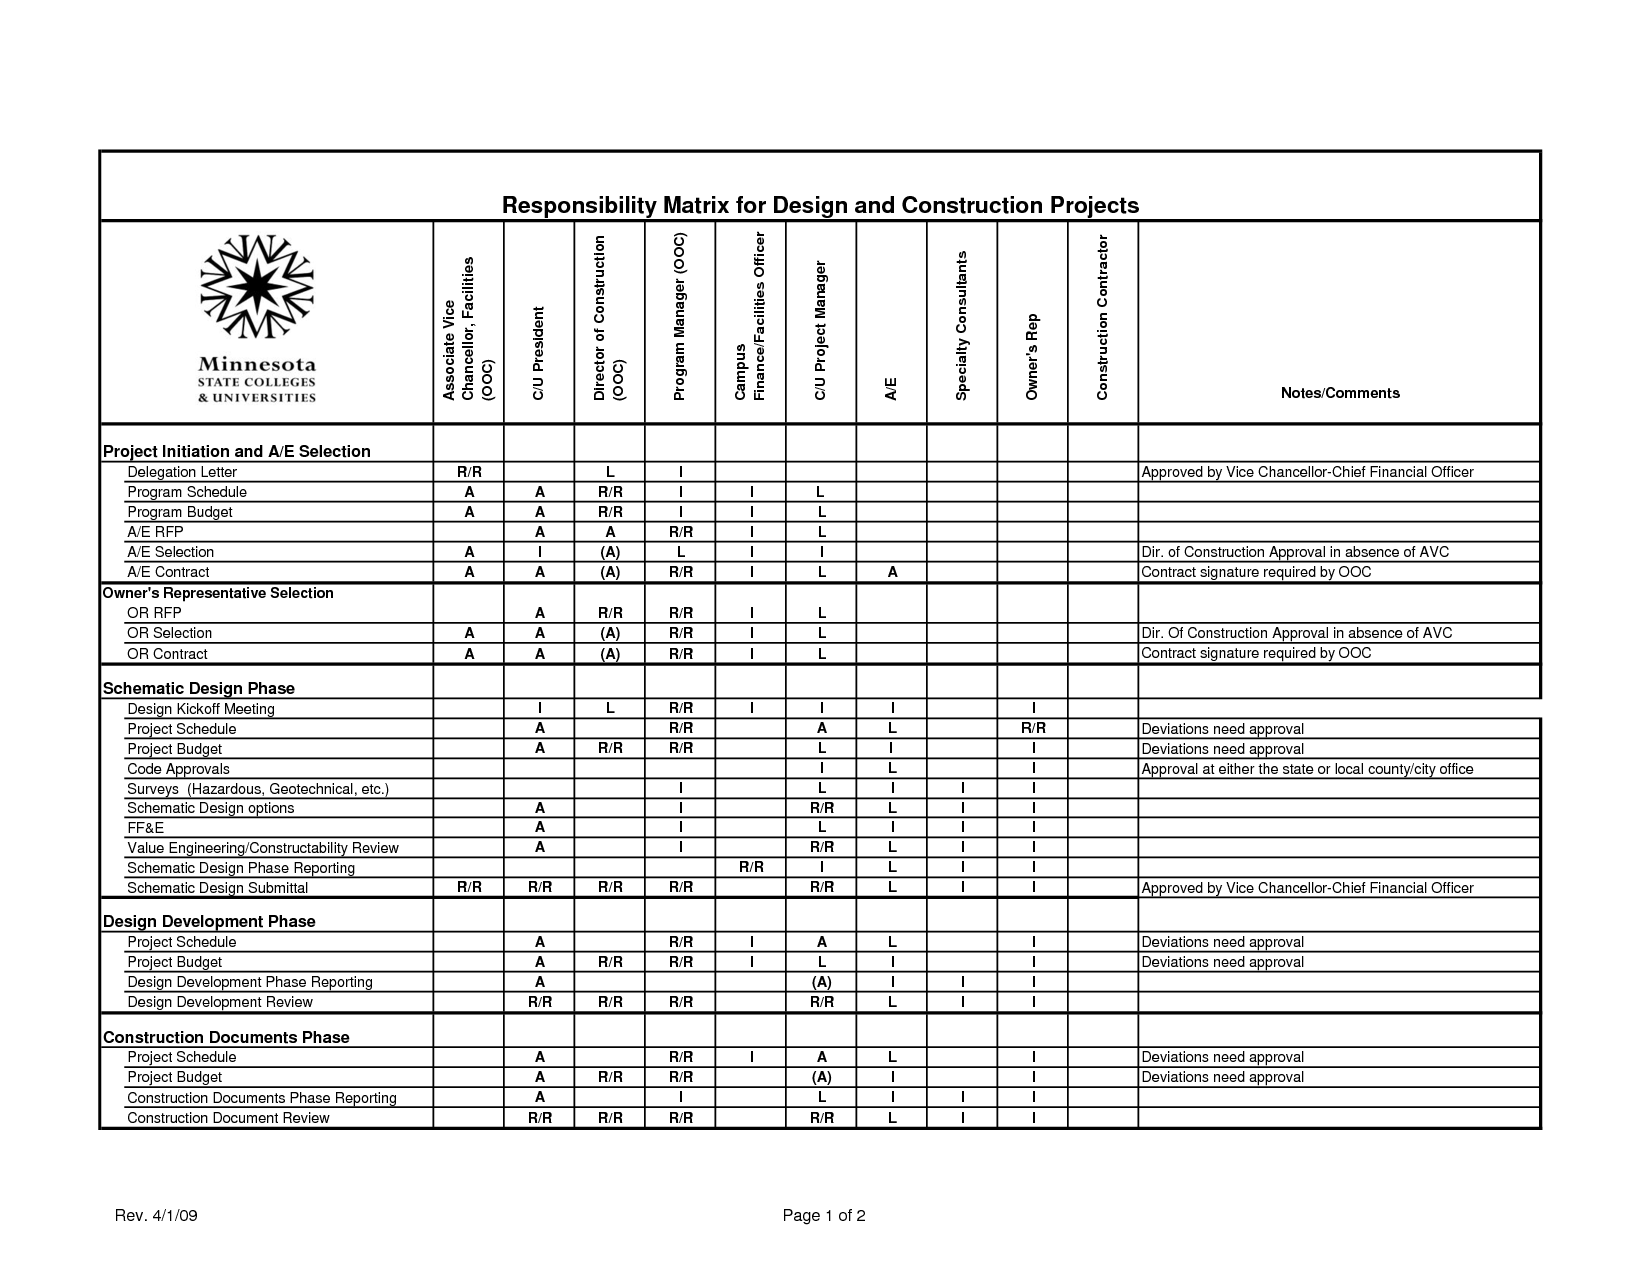 Table Of Responsibilities  Responsibility Matrix For Design And